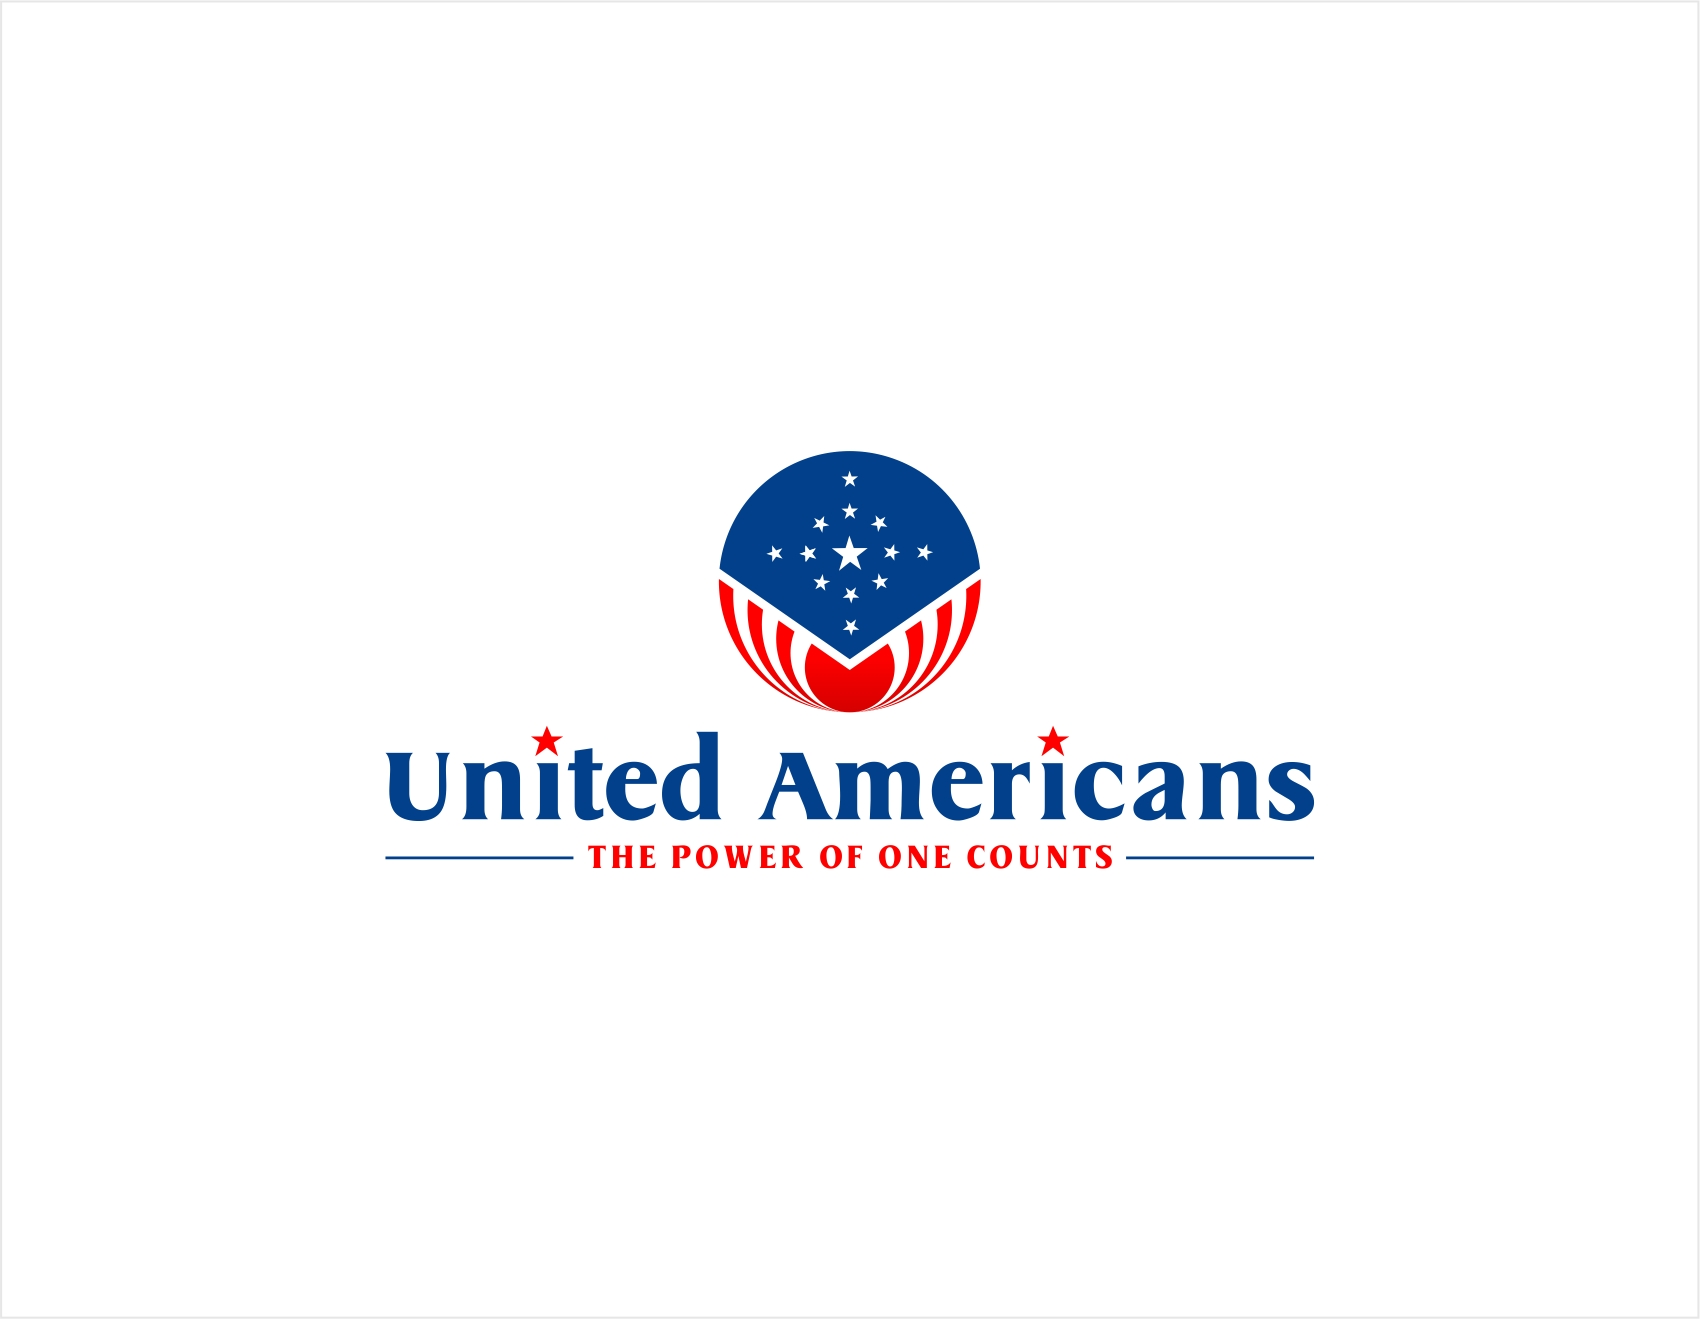 Logo Design by haidu - Entry No. 96 in the Logo Design Contest Creative Logo Design for United Americans.